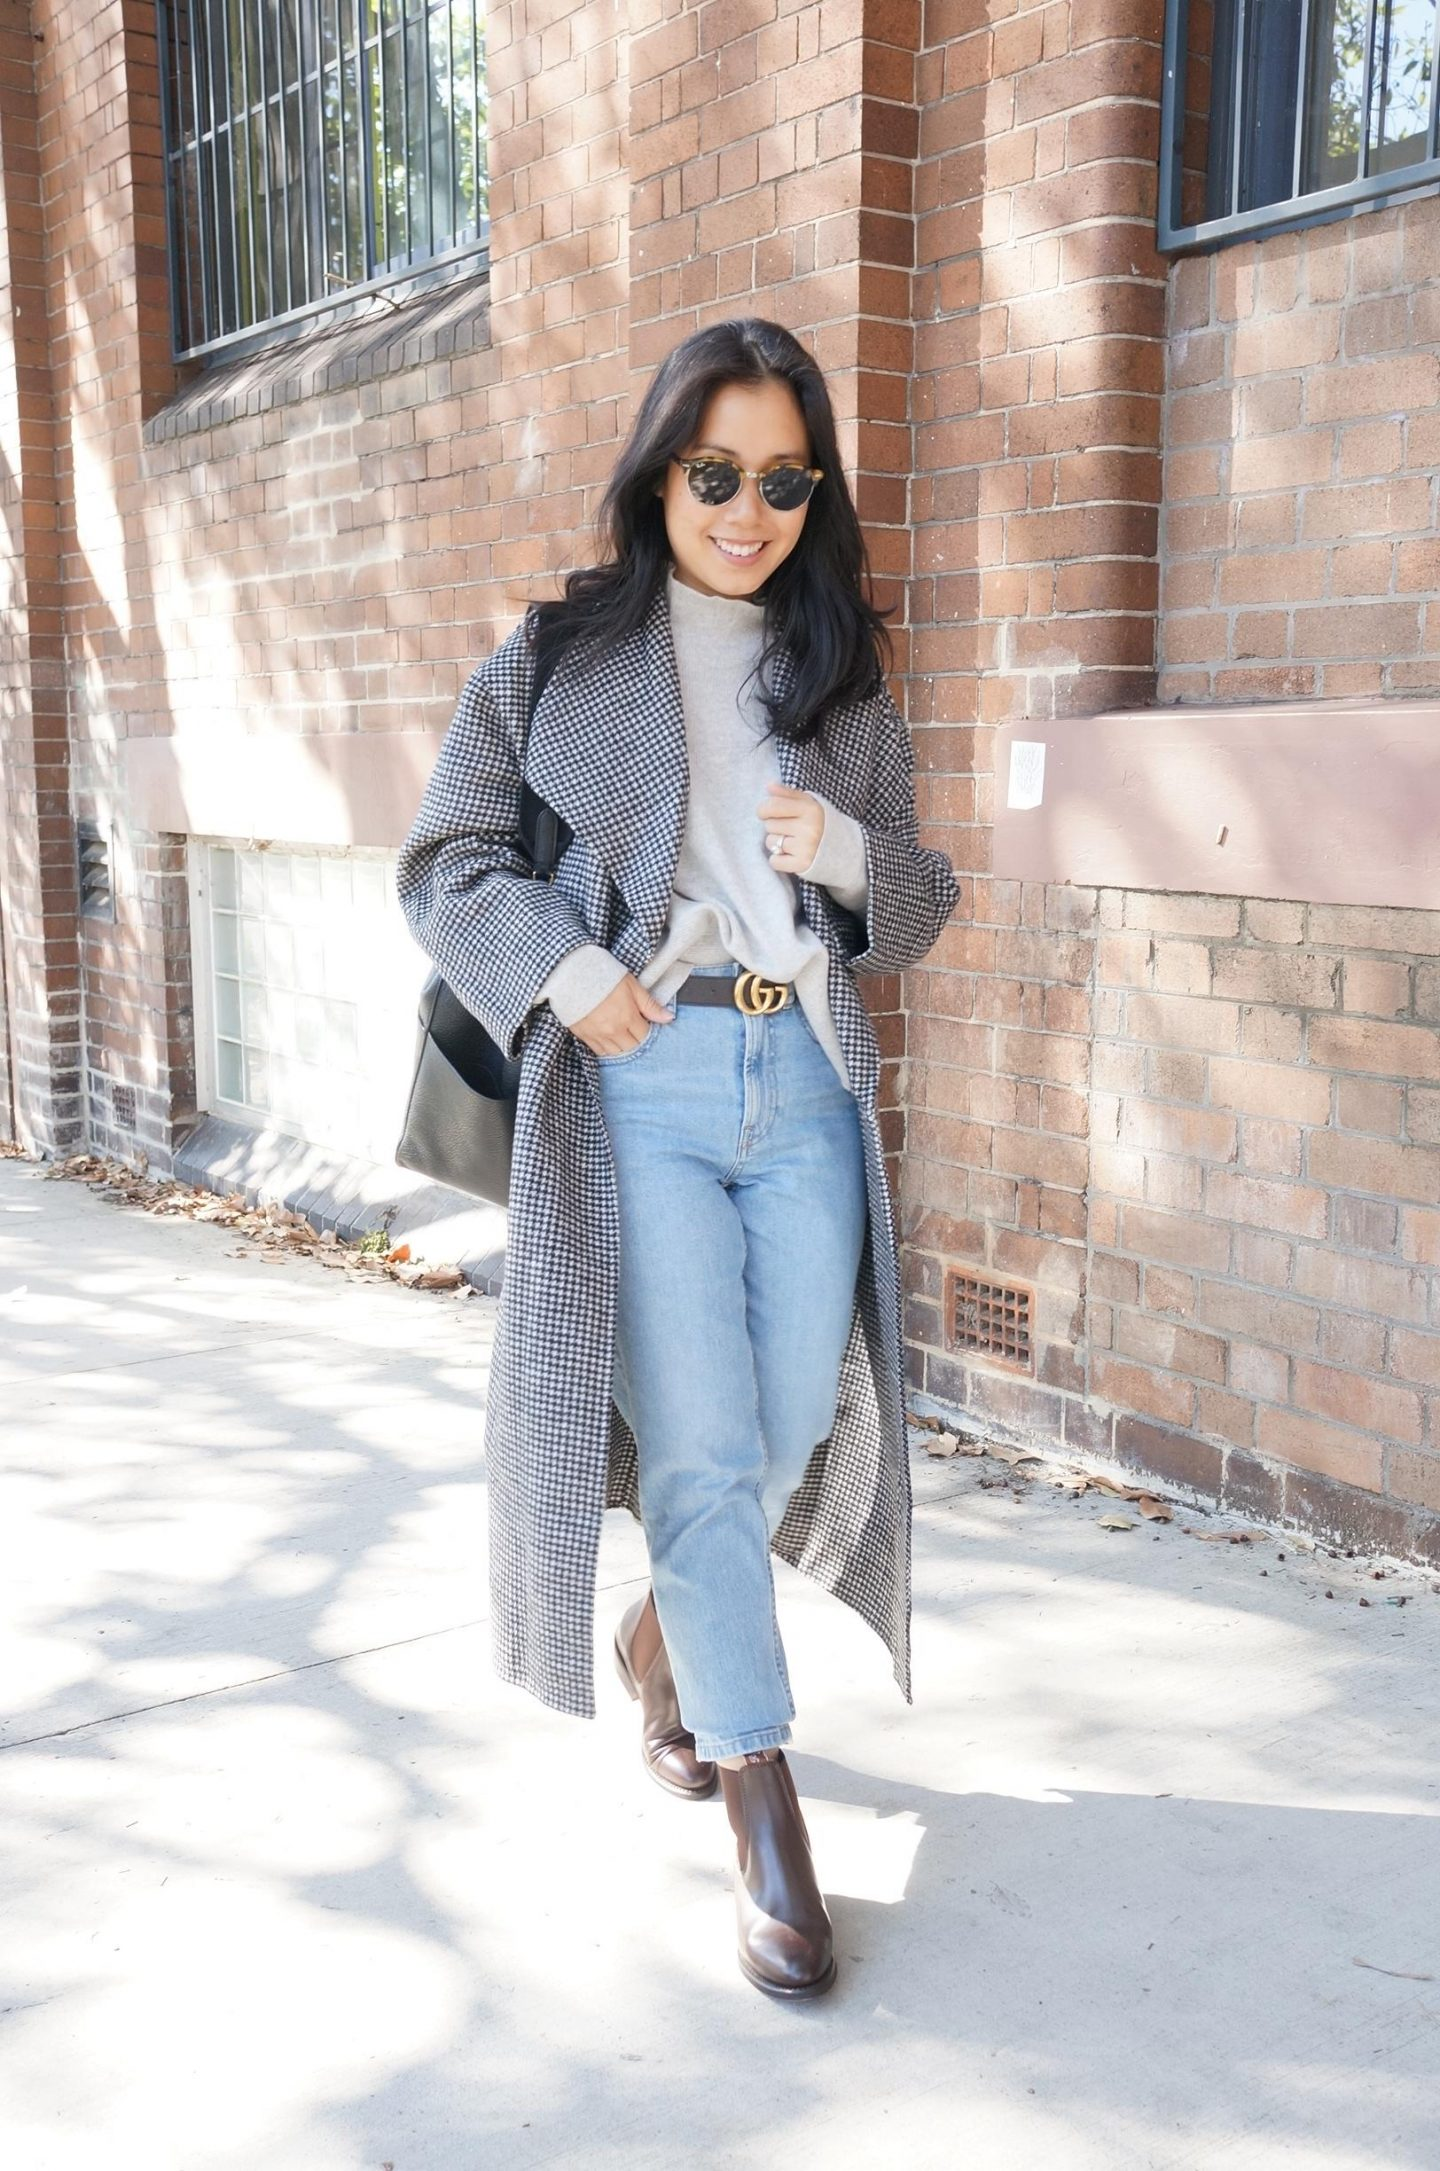 straight leg jeans in blog post about alternatives to skinny jeans